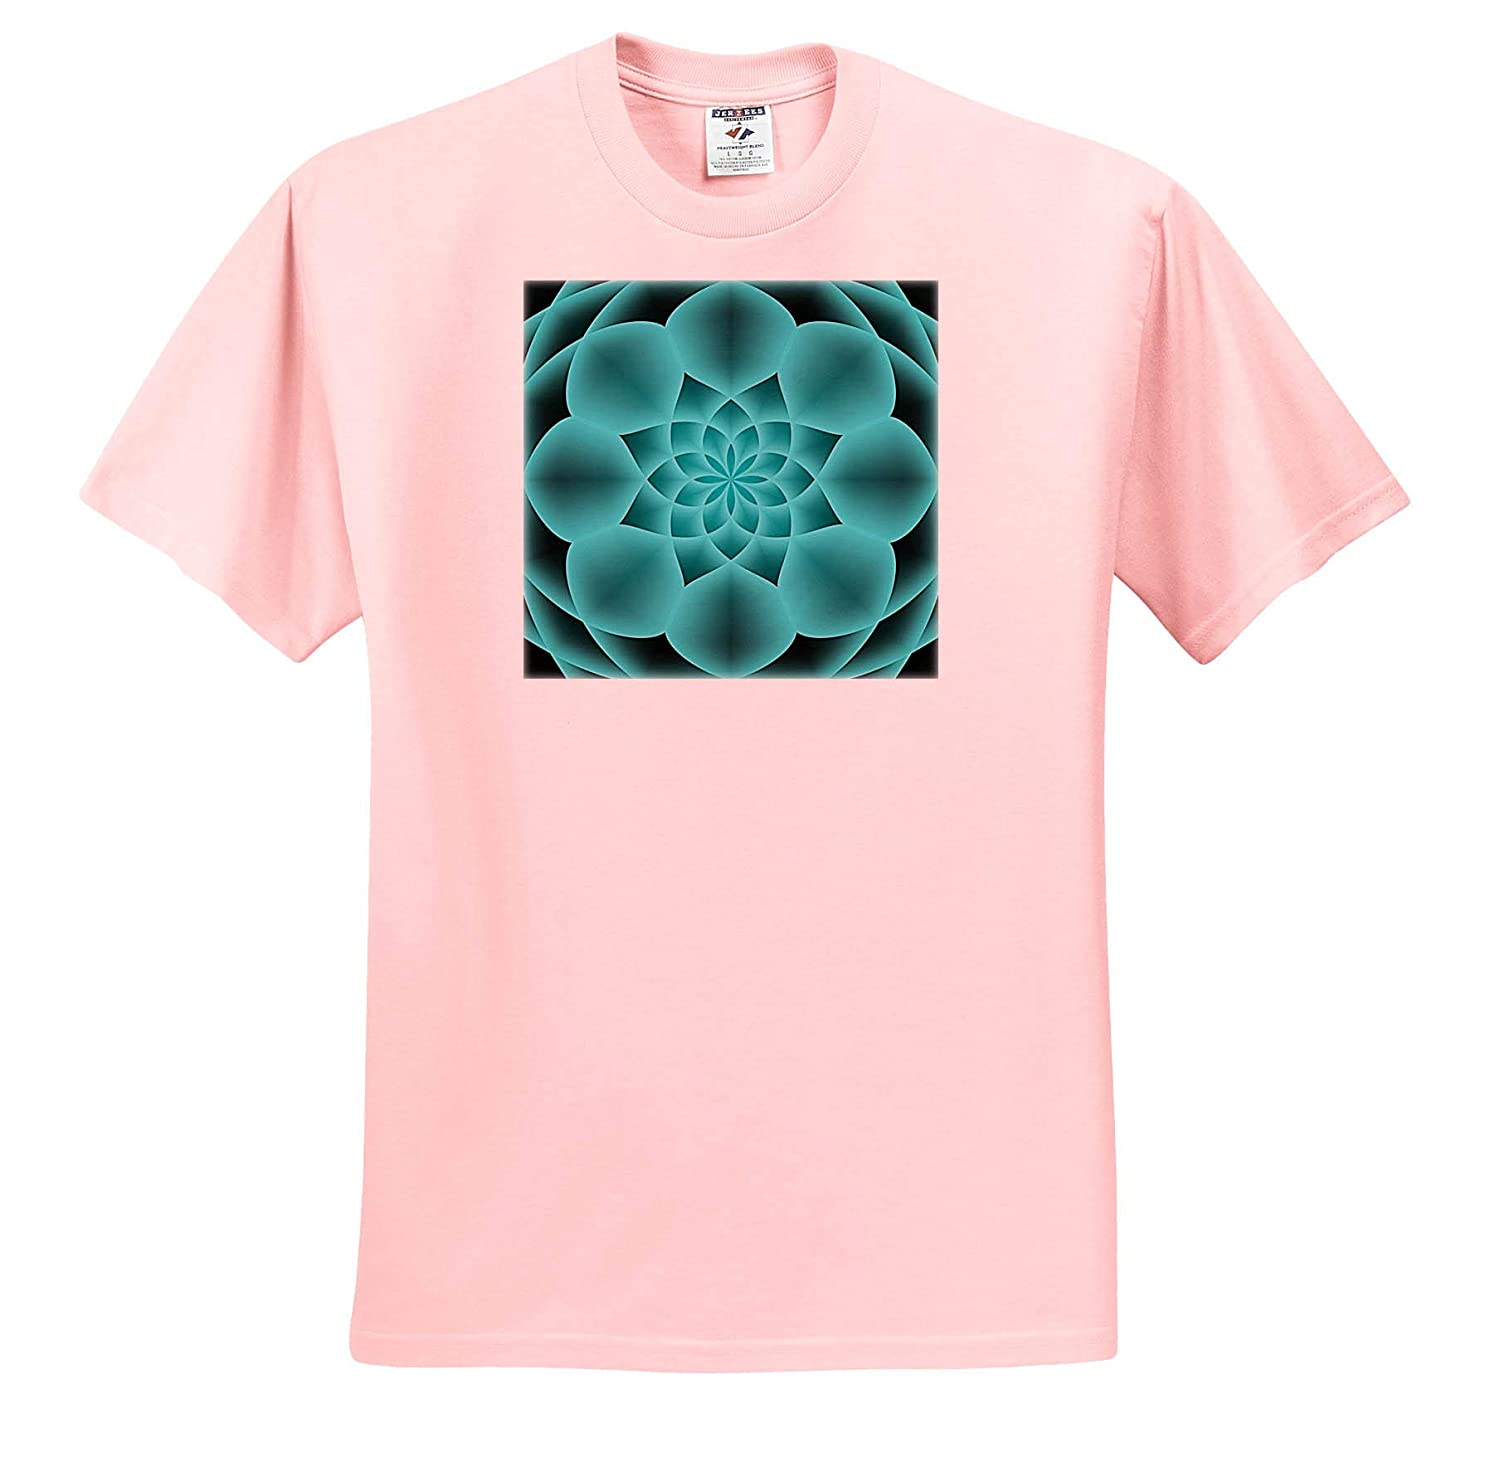 3dRose Andrea Haase Abstract Art and Design T-Shirts Symmetrical Modern Abstract Design in Shades of Turquoise